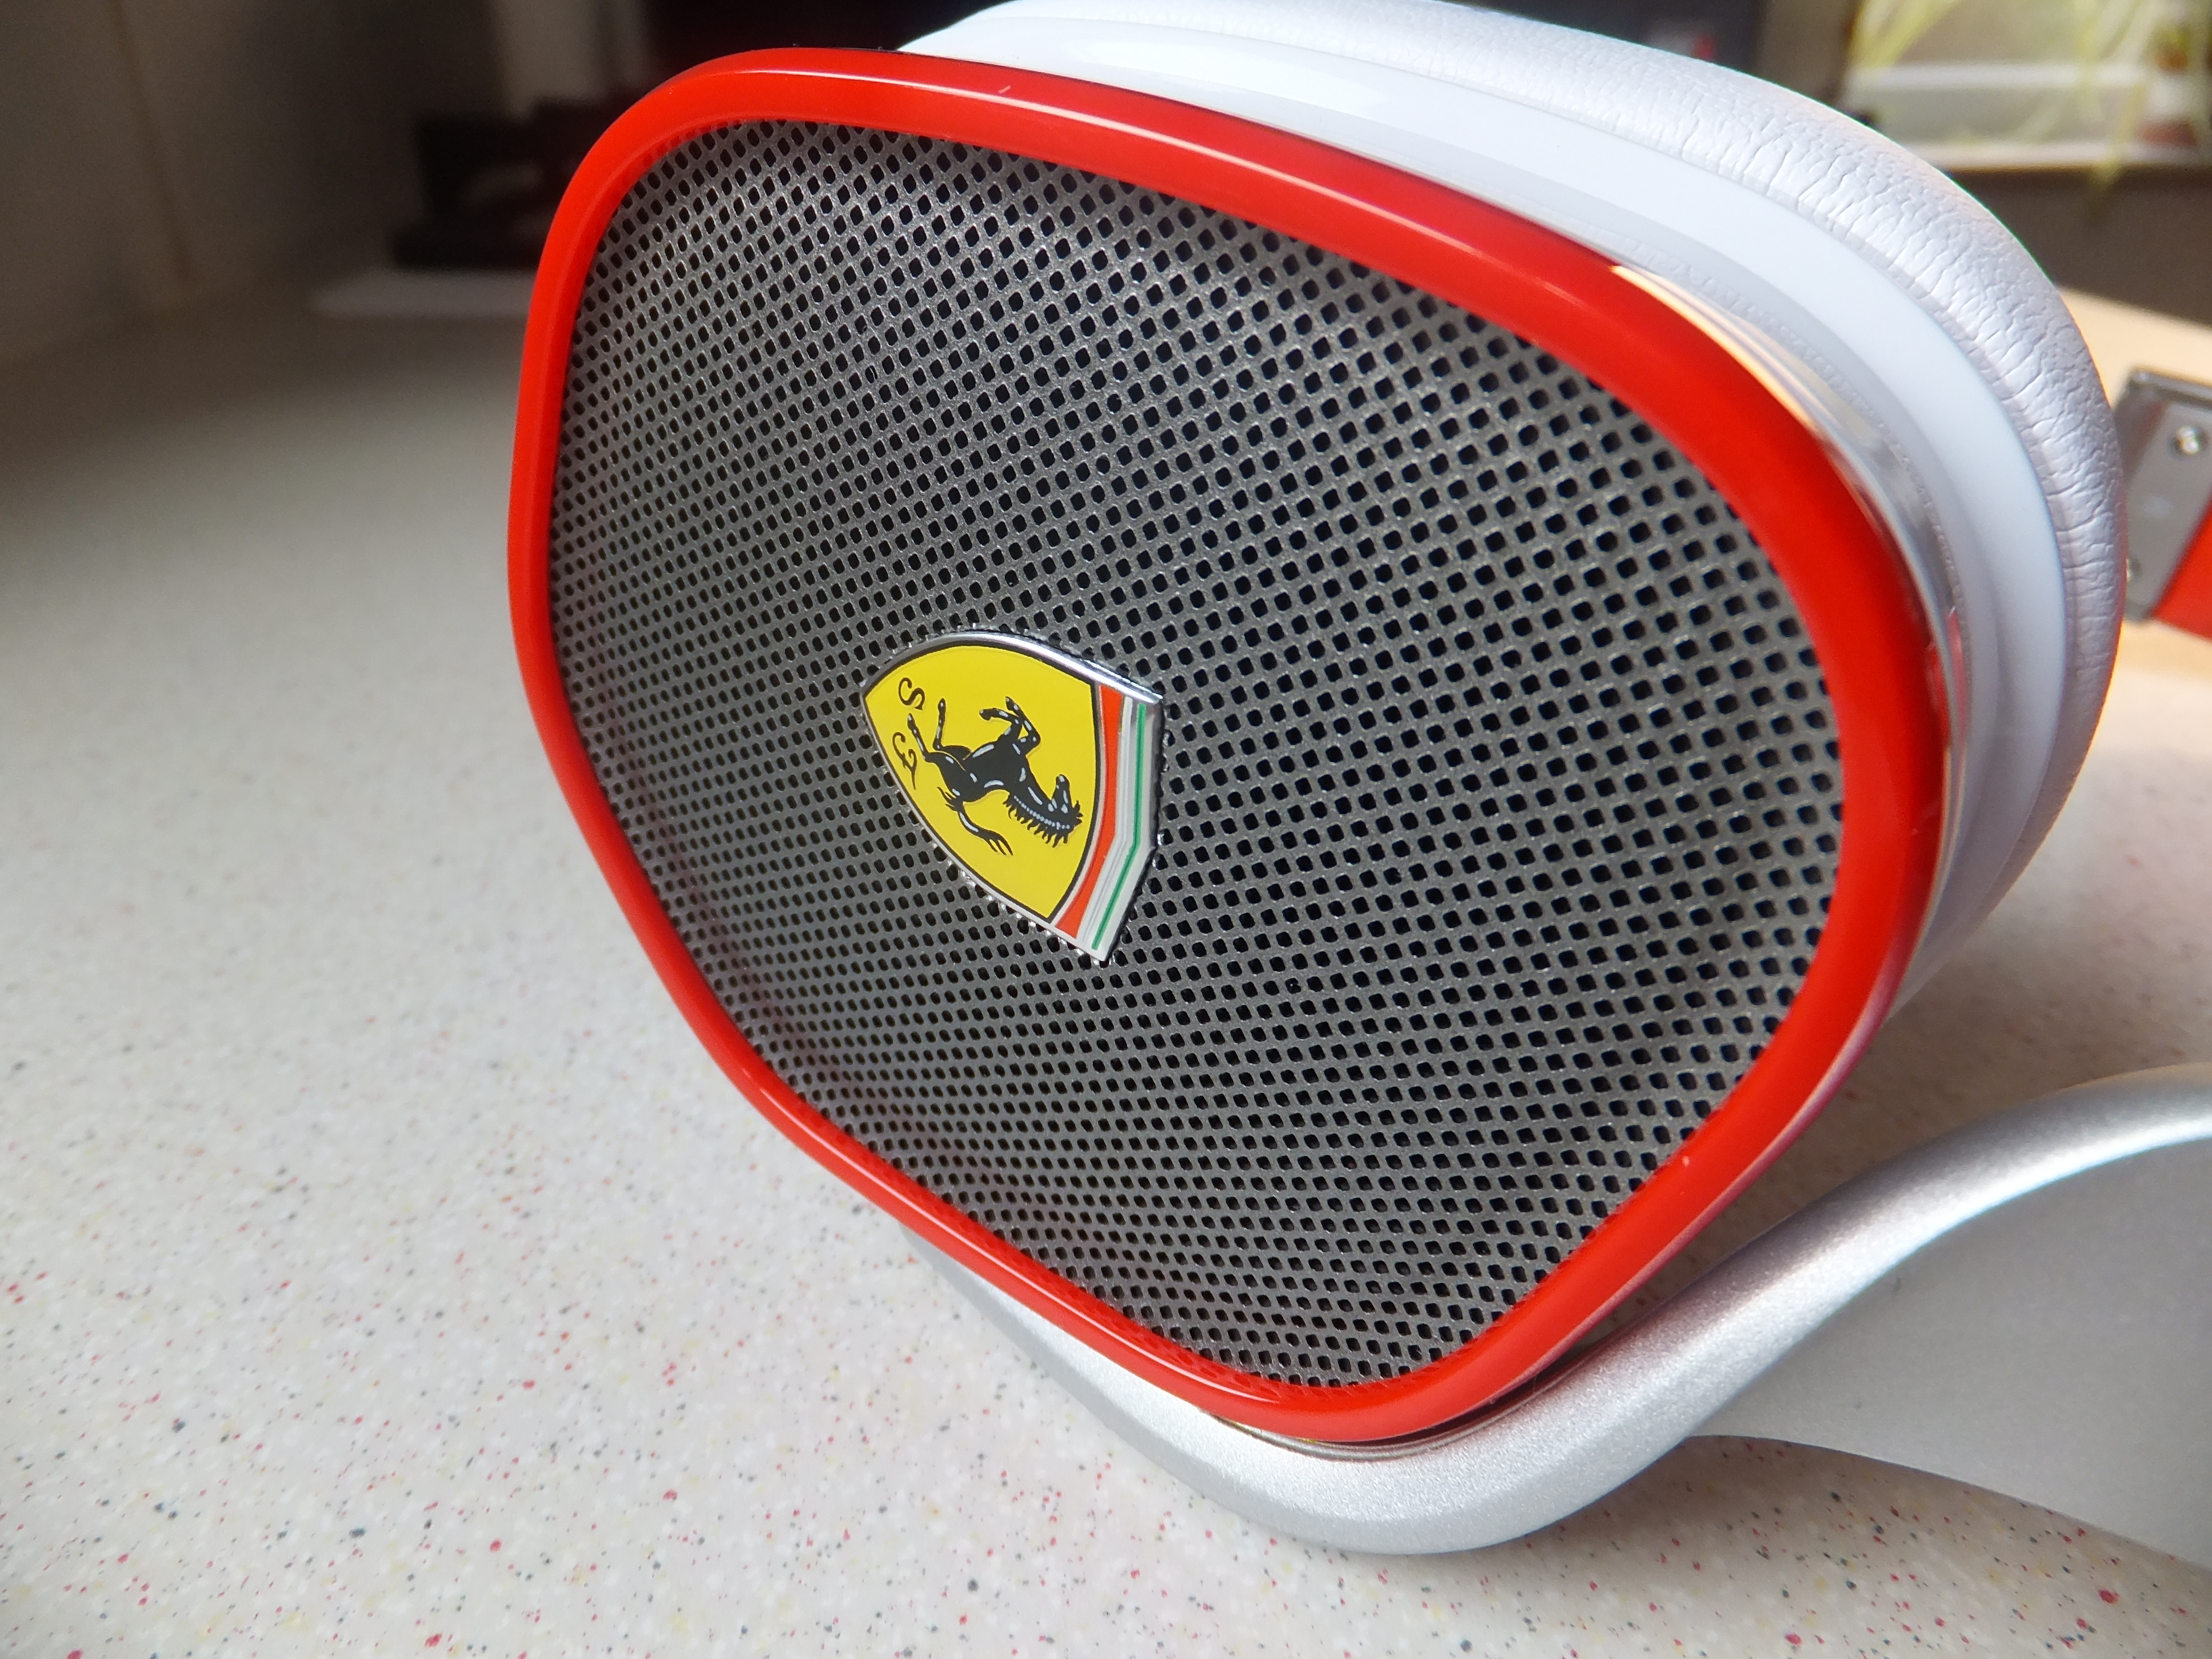 review headphones controls headphone paired reviews beautiful cavallino design ferraric ferrari by